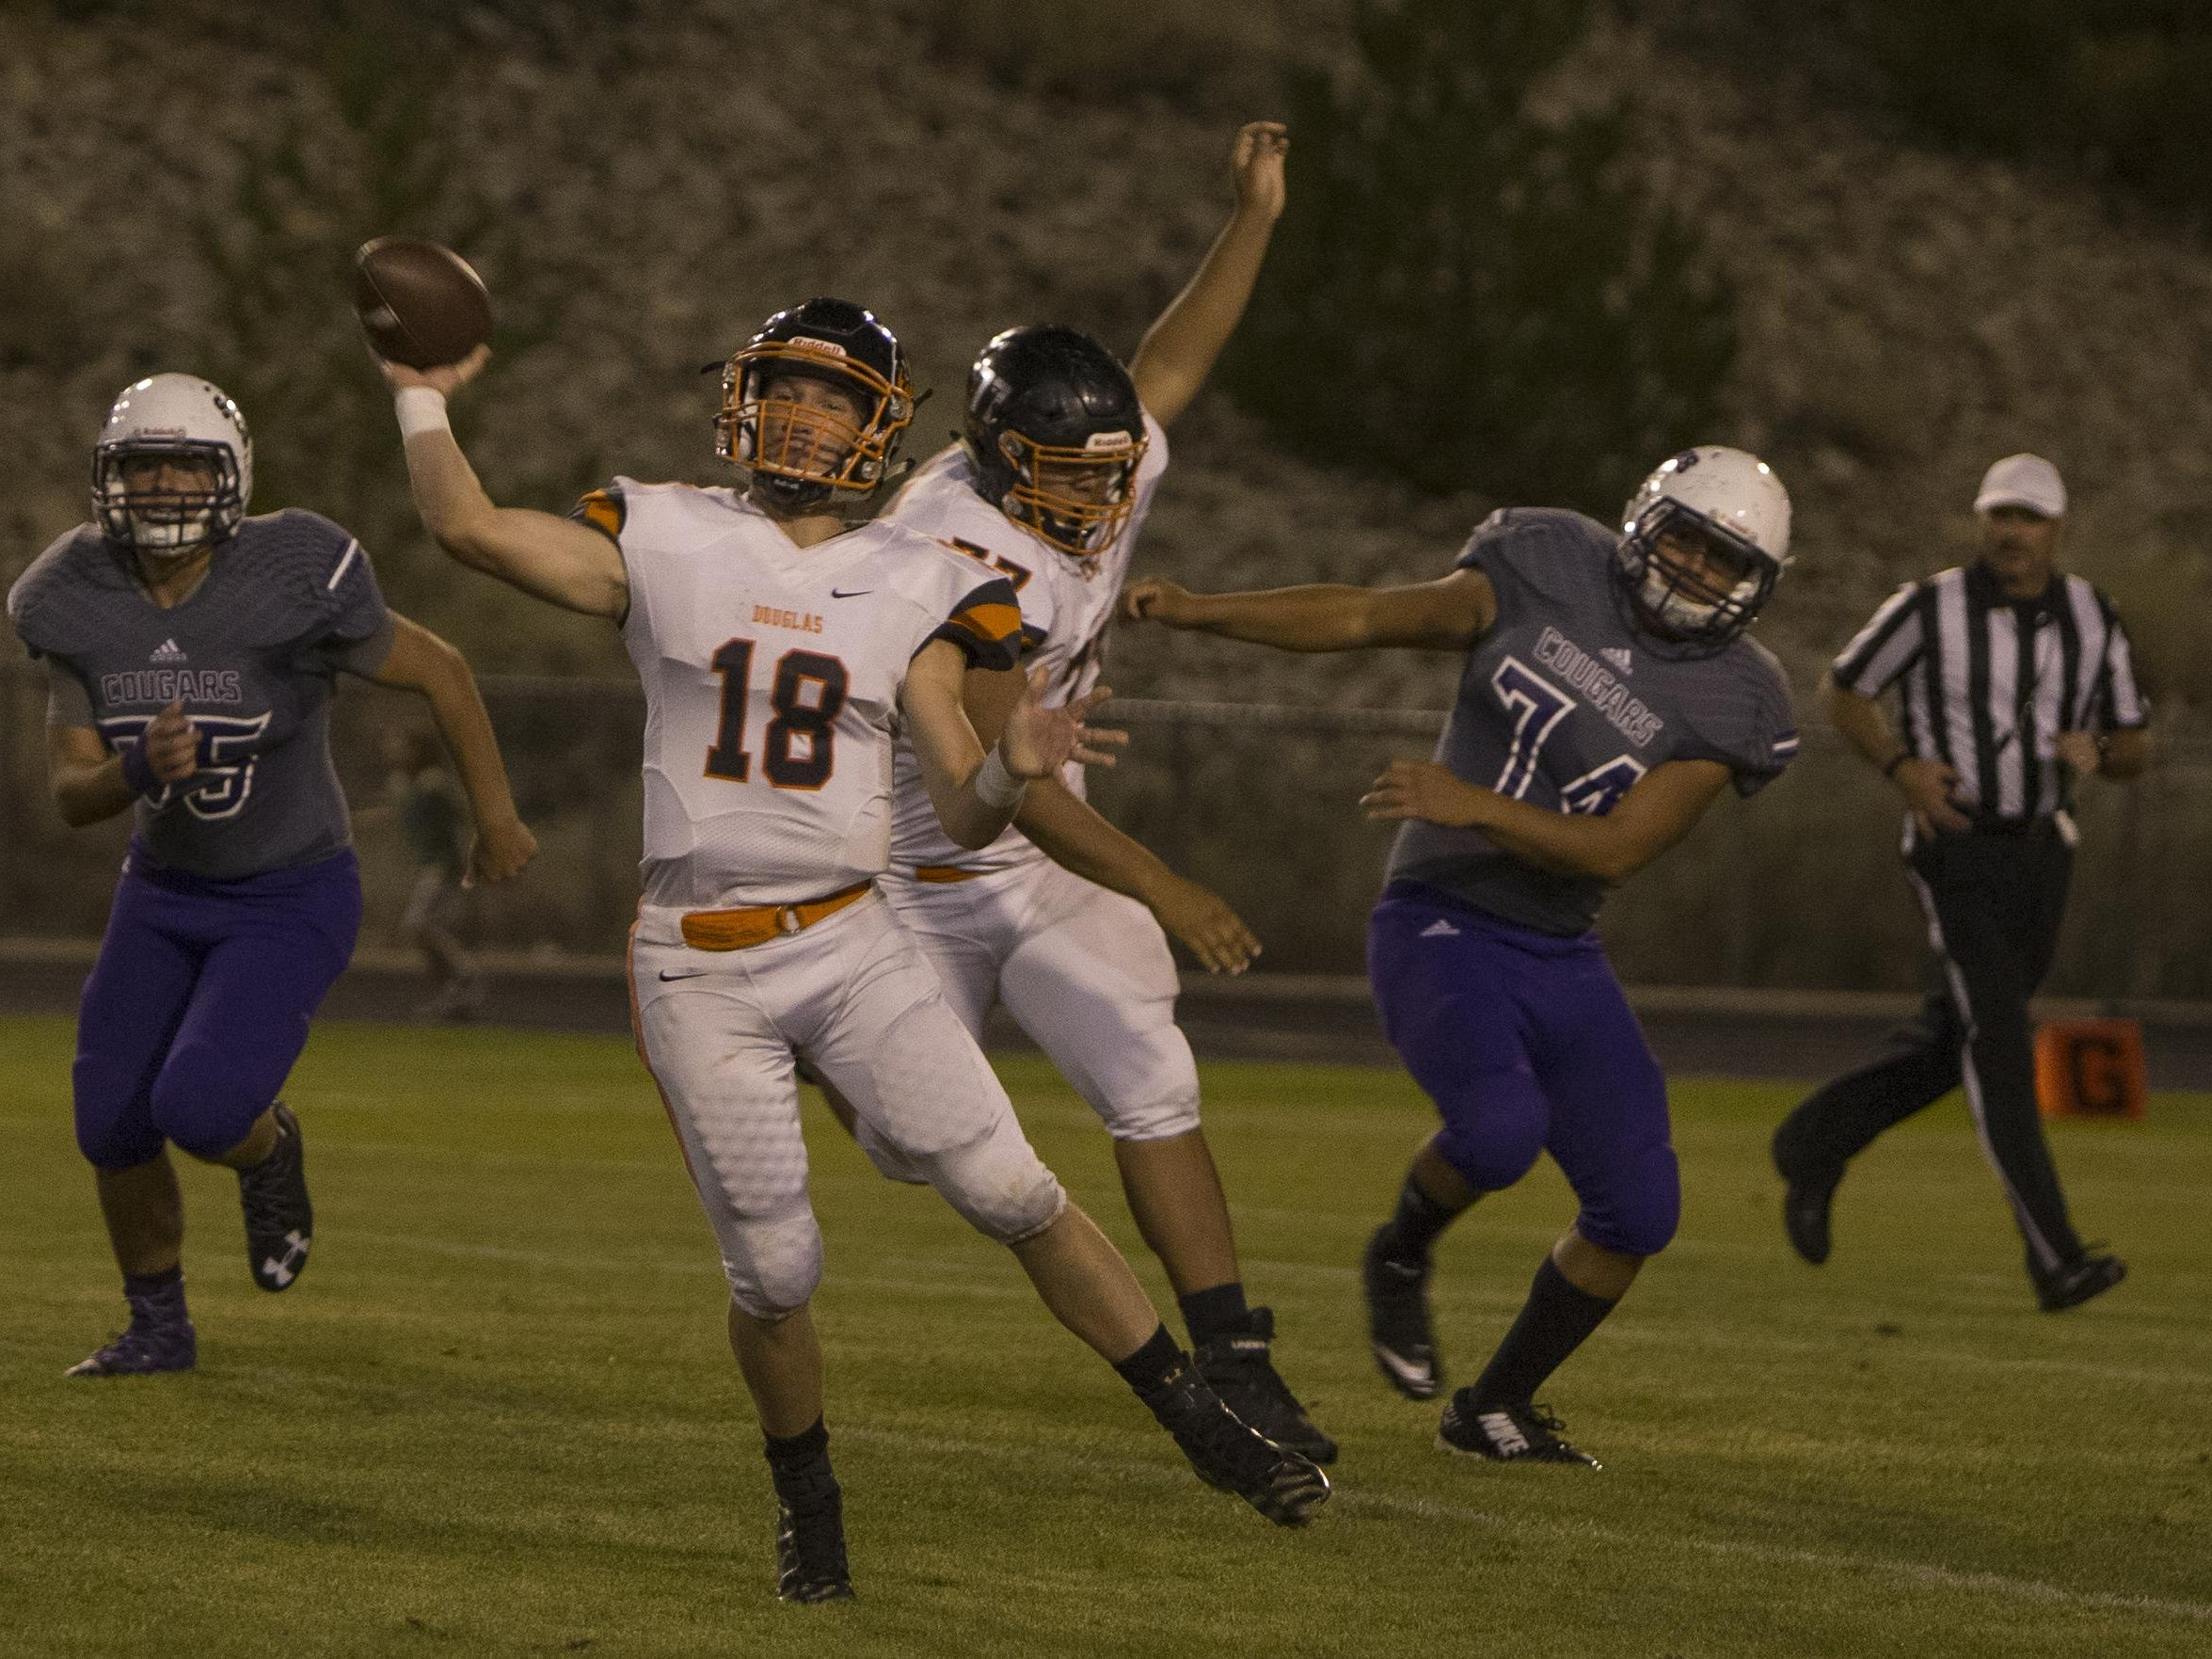 Douglas quarterback Hunter Hickey throws against Spanish Springs on Friday.